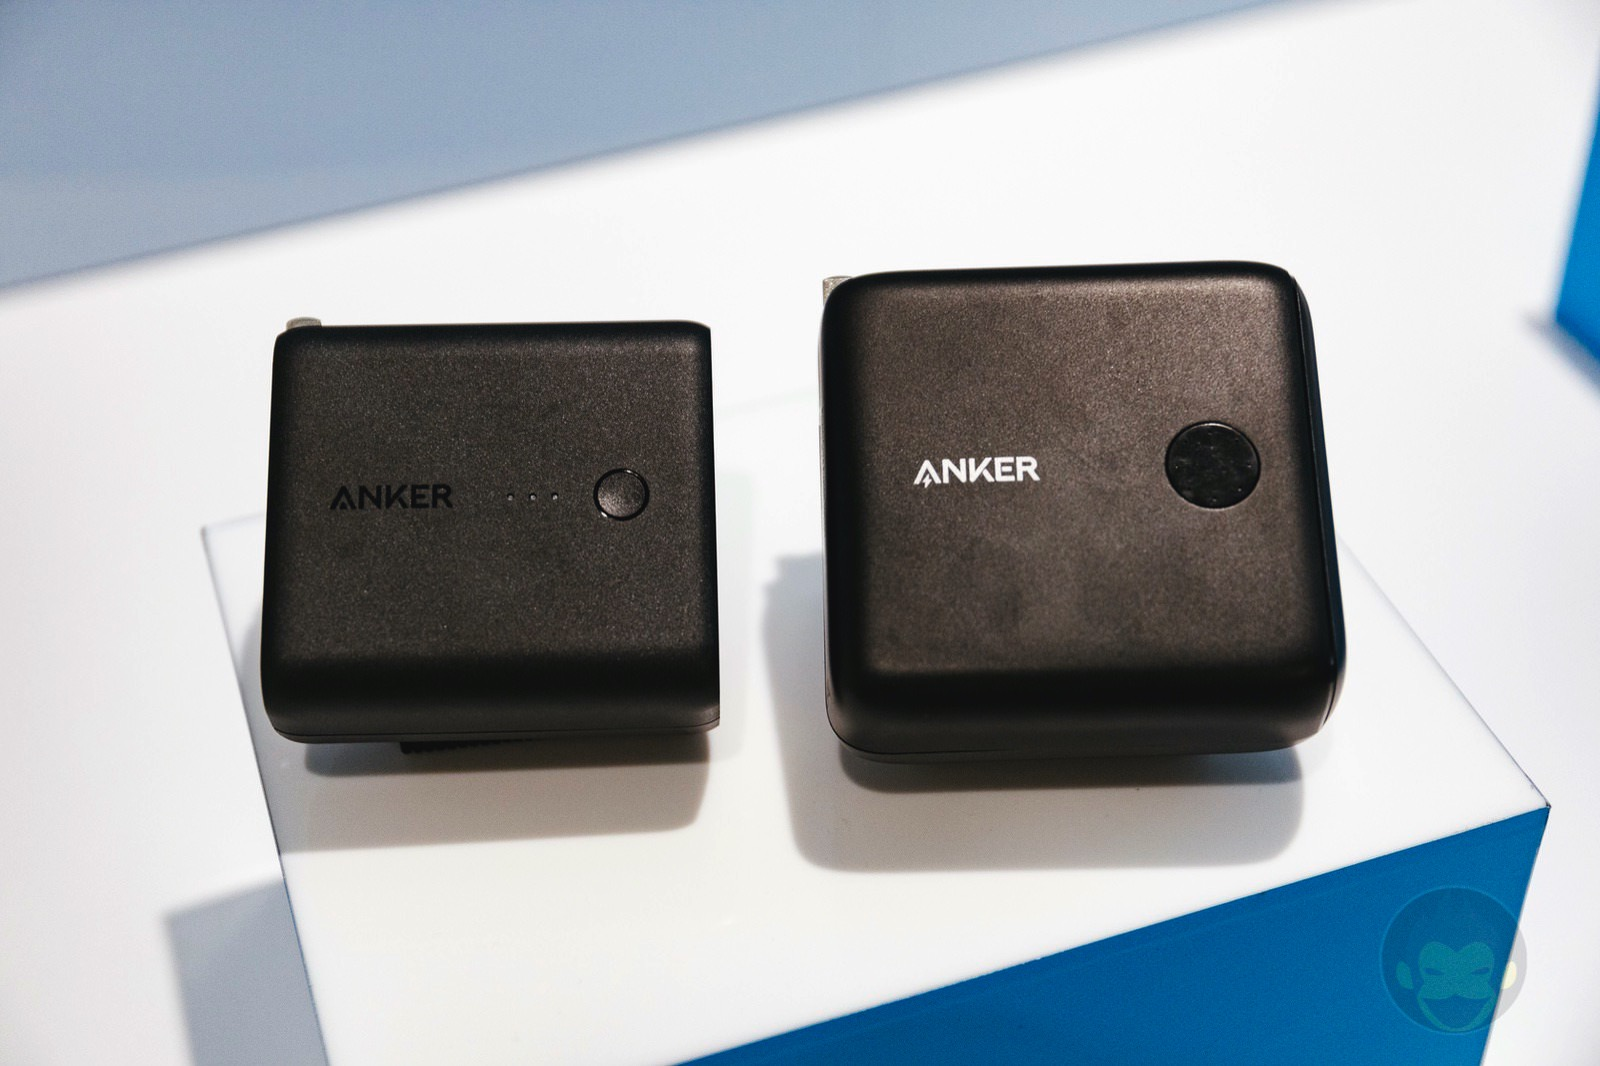 Anker Press Conference 2018 New Products 26